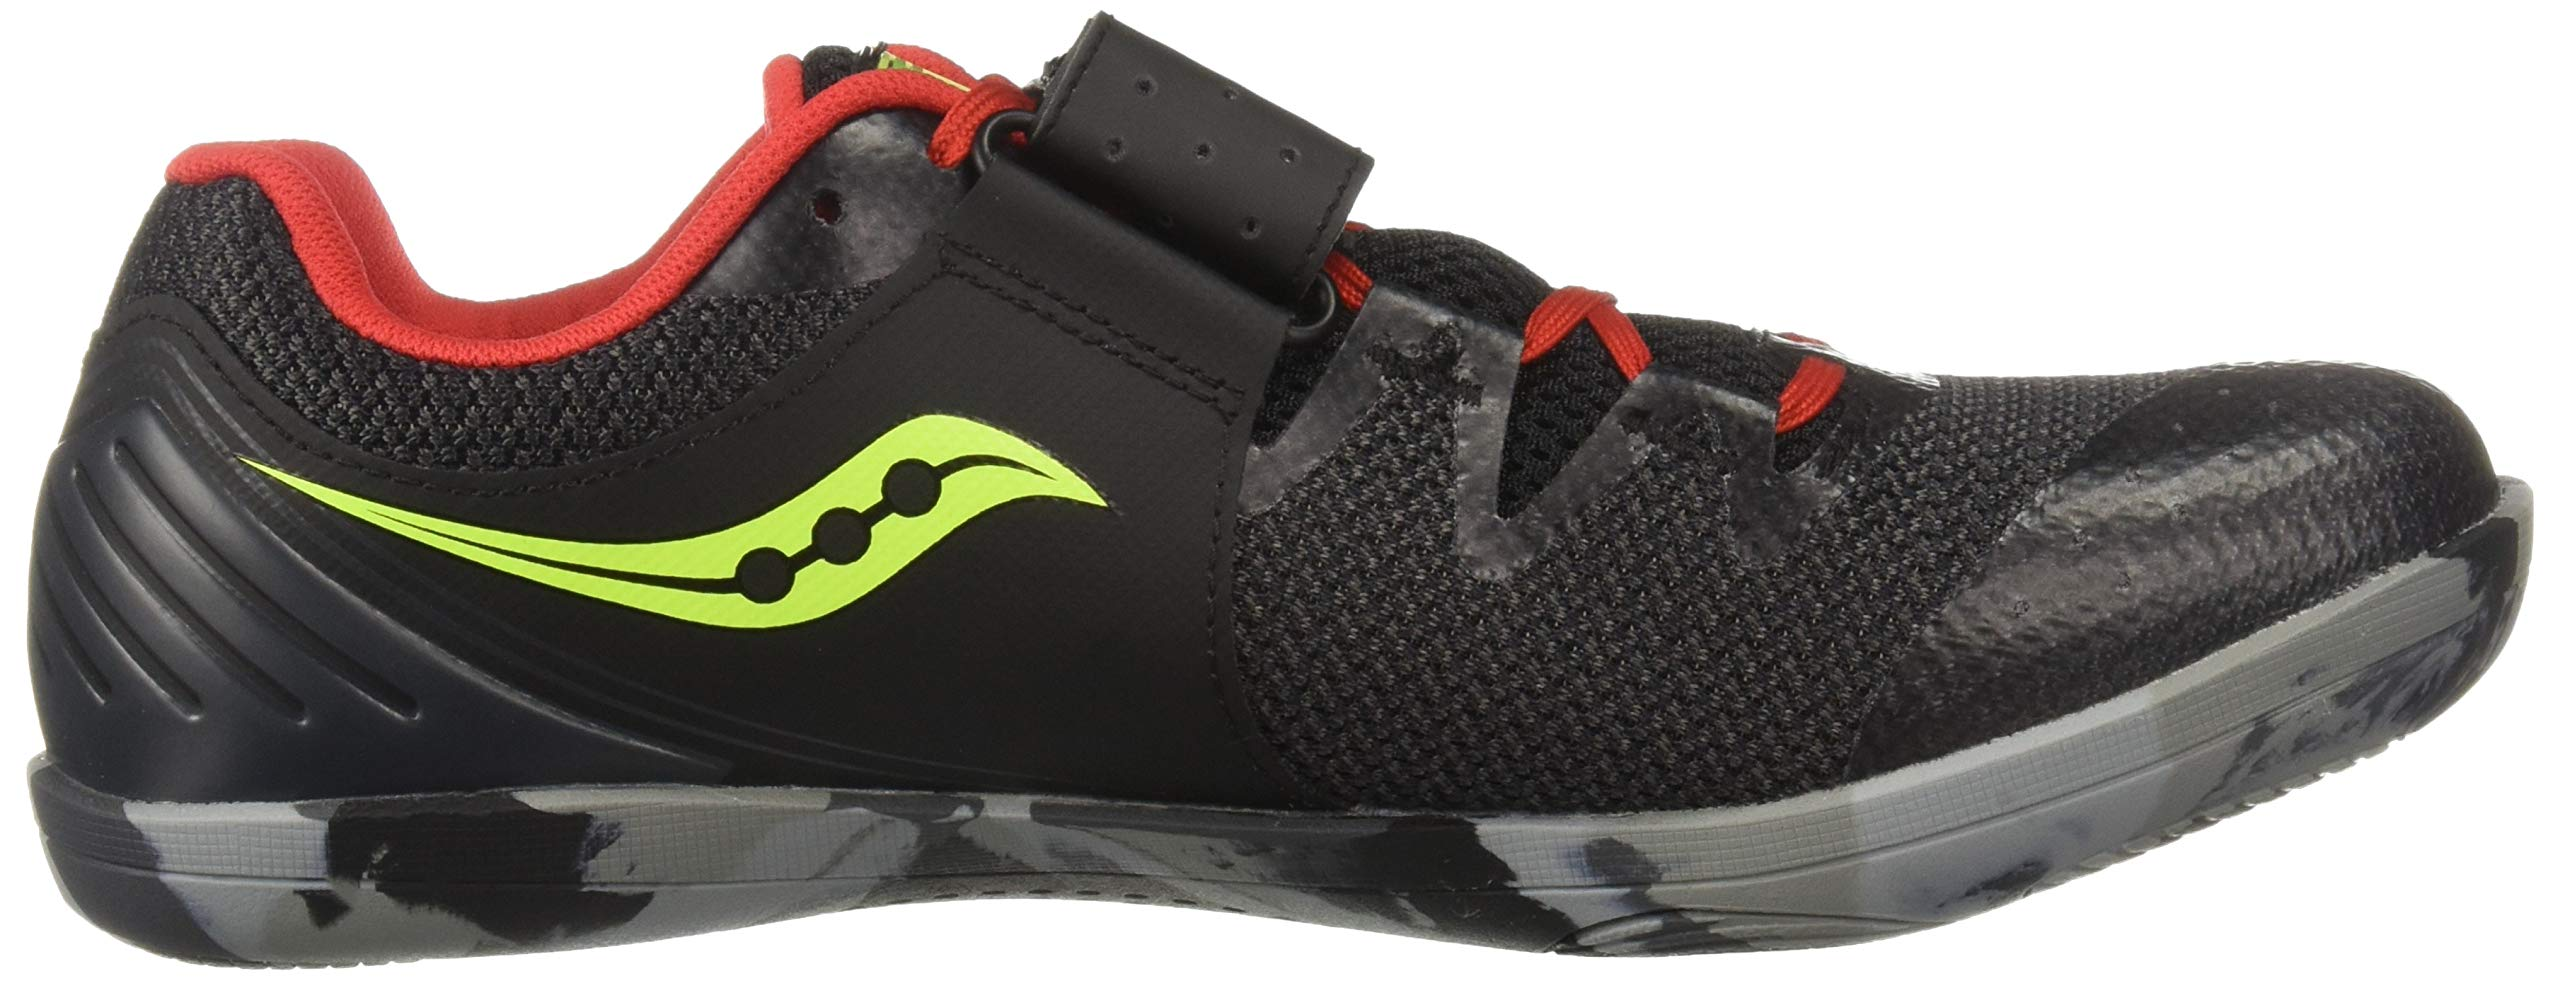 Saucony Men's Unleash SD2 Track and Field Shoe Black/red 8.5 by Saucony (Image #7)